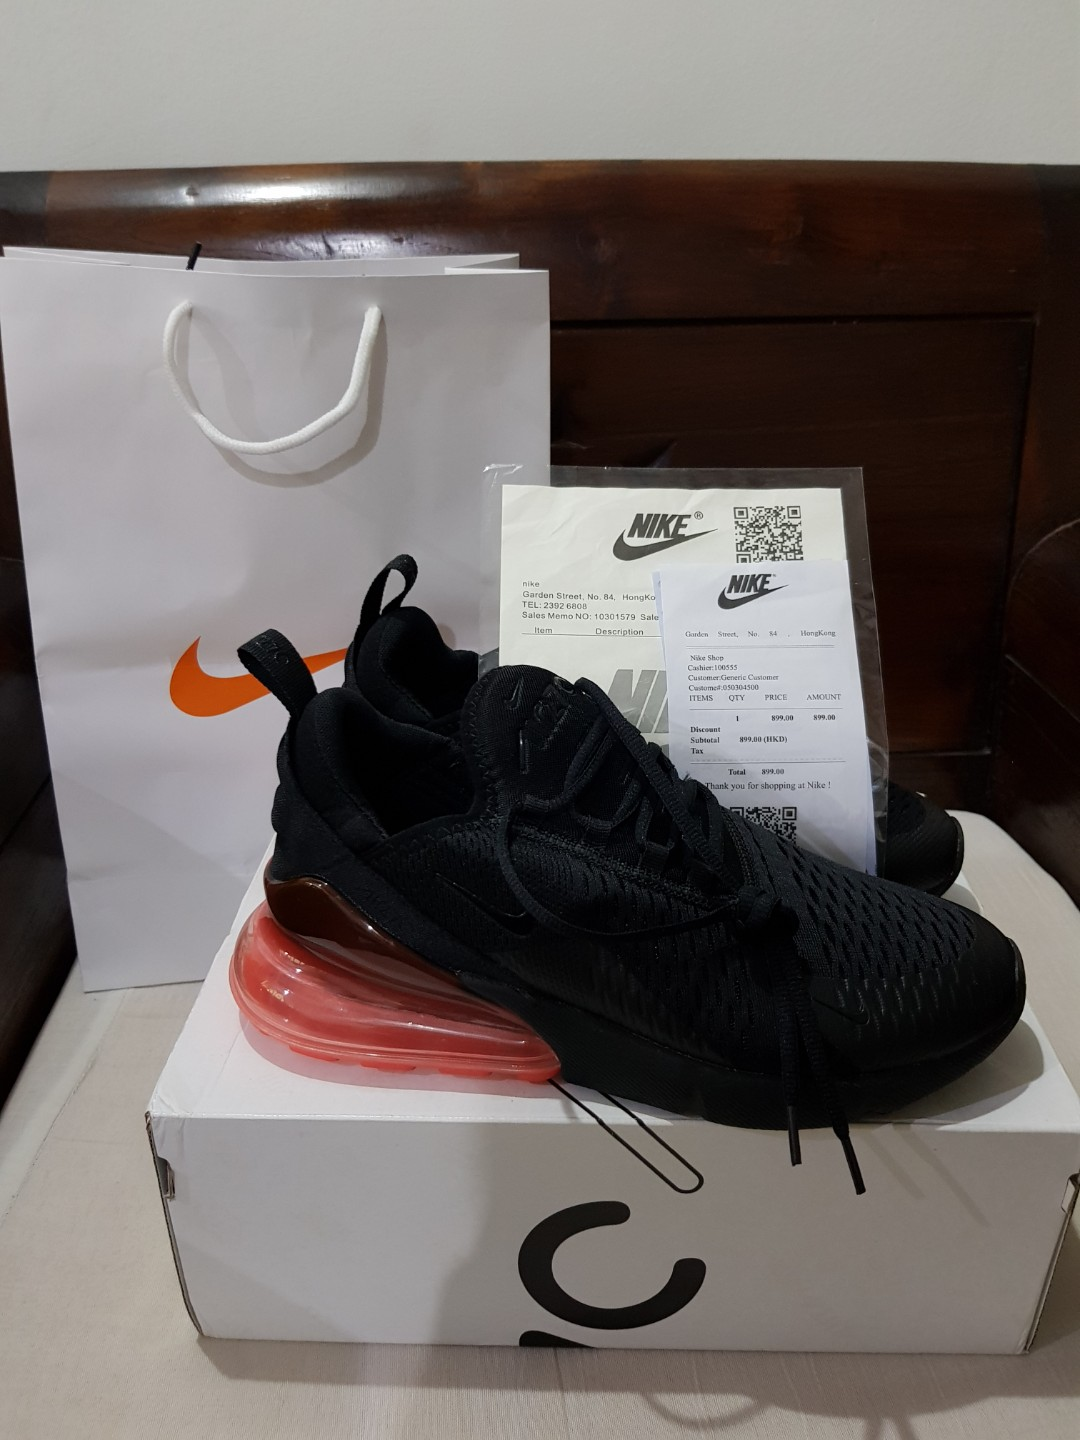 2871bf9237 Nike Air Max 270 Hot Punch, Men's Fashion, Footwear, Sneakers on ...